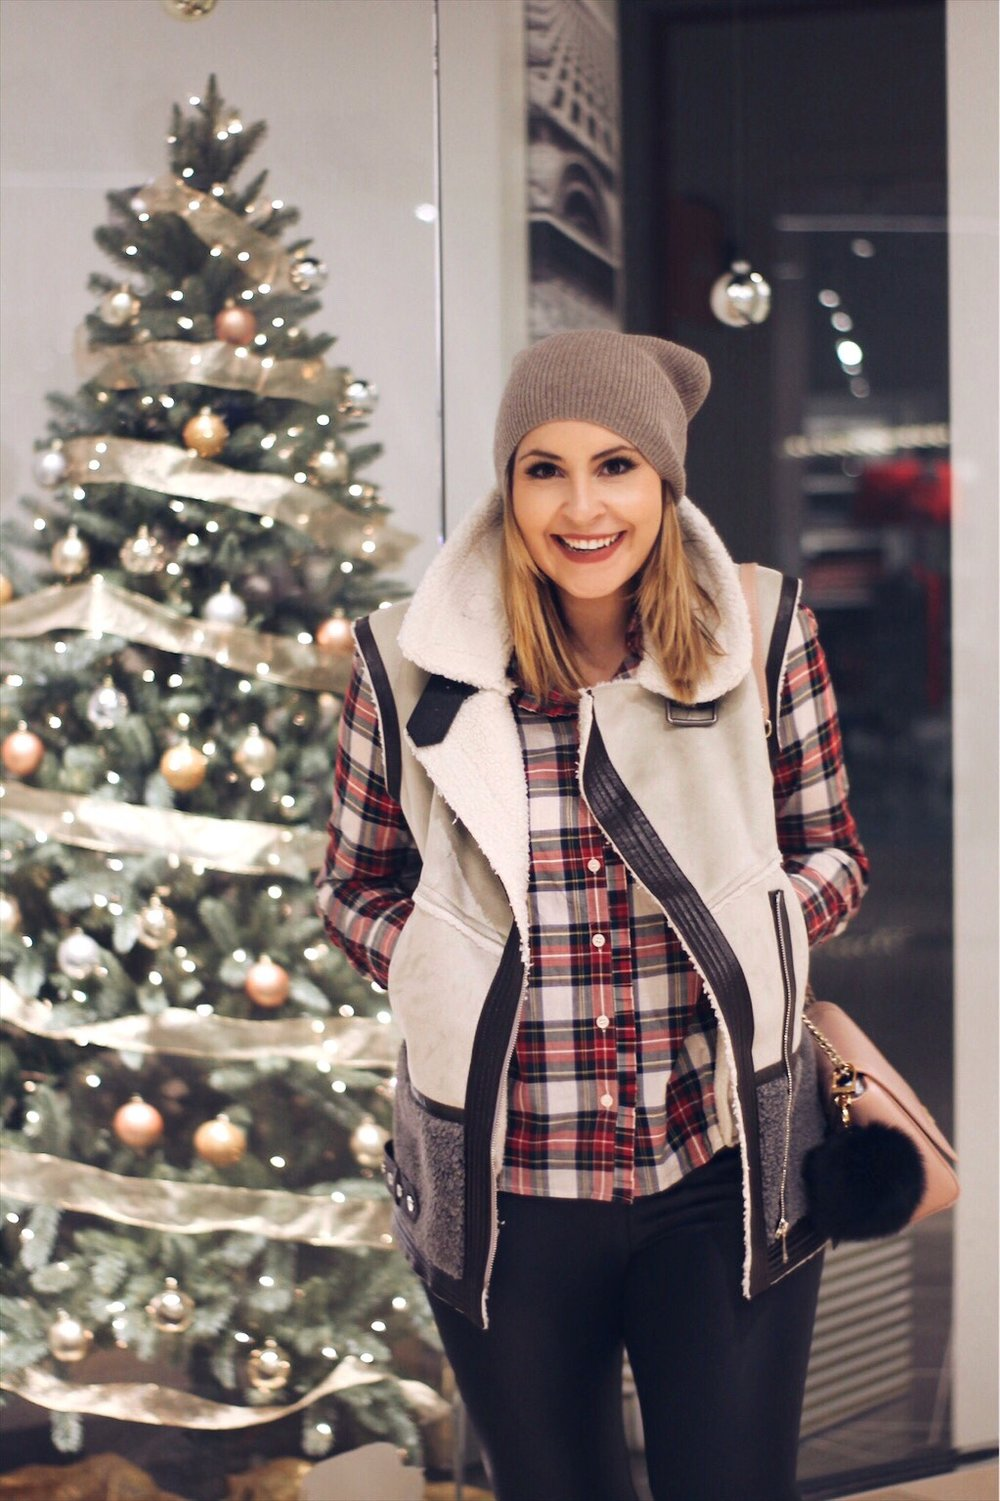 Plaid shirt - JCrew Vest & Accessories – Saks Off 5th (How cute is that purse puff ball!?)  Leather leggings – Nordstrom